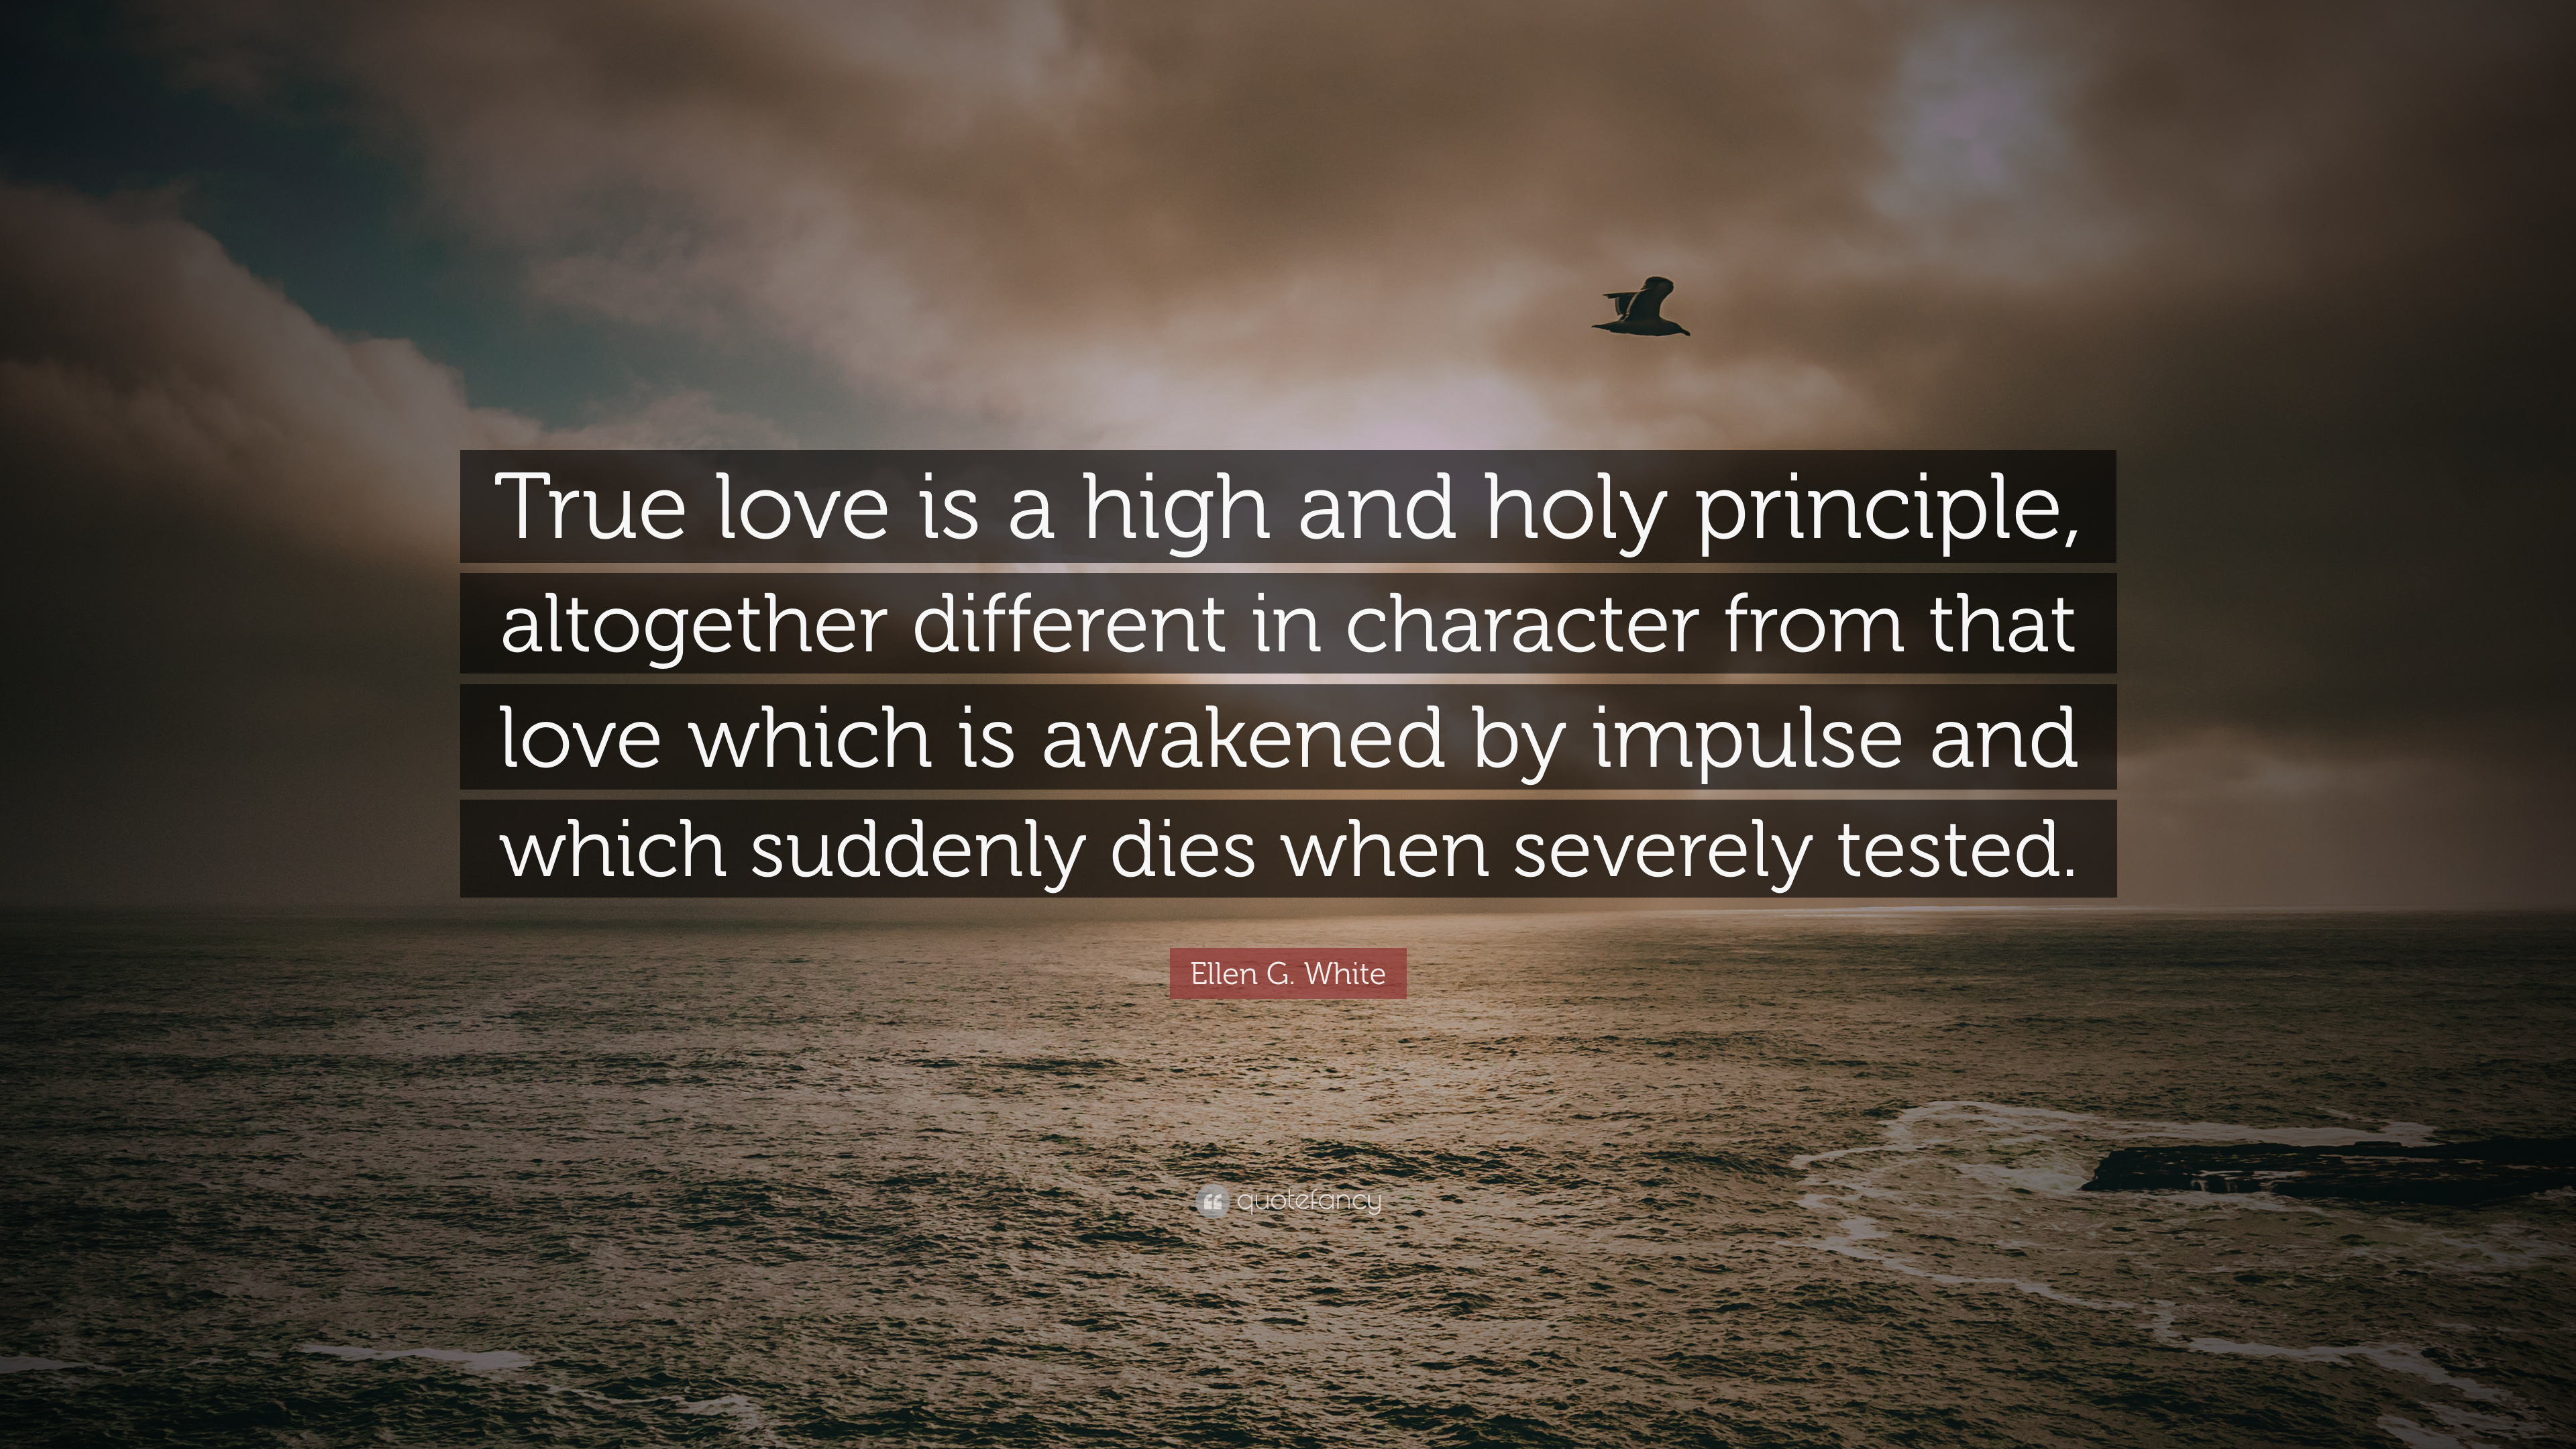 Ellen G White Quote True Love Is A High And Holy Principle